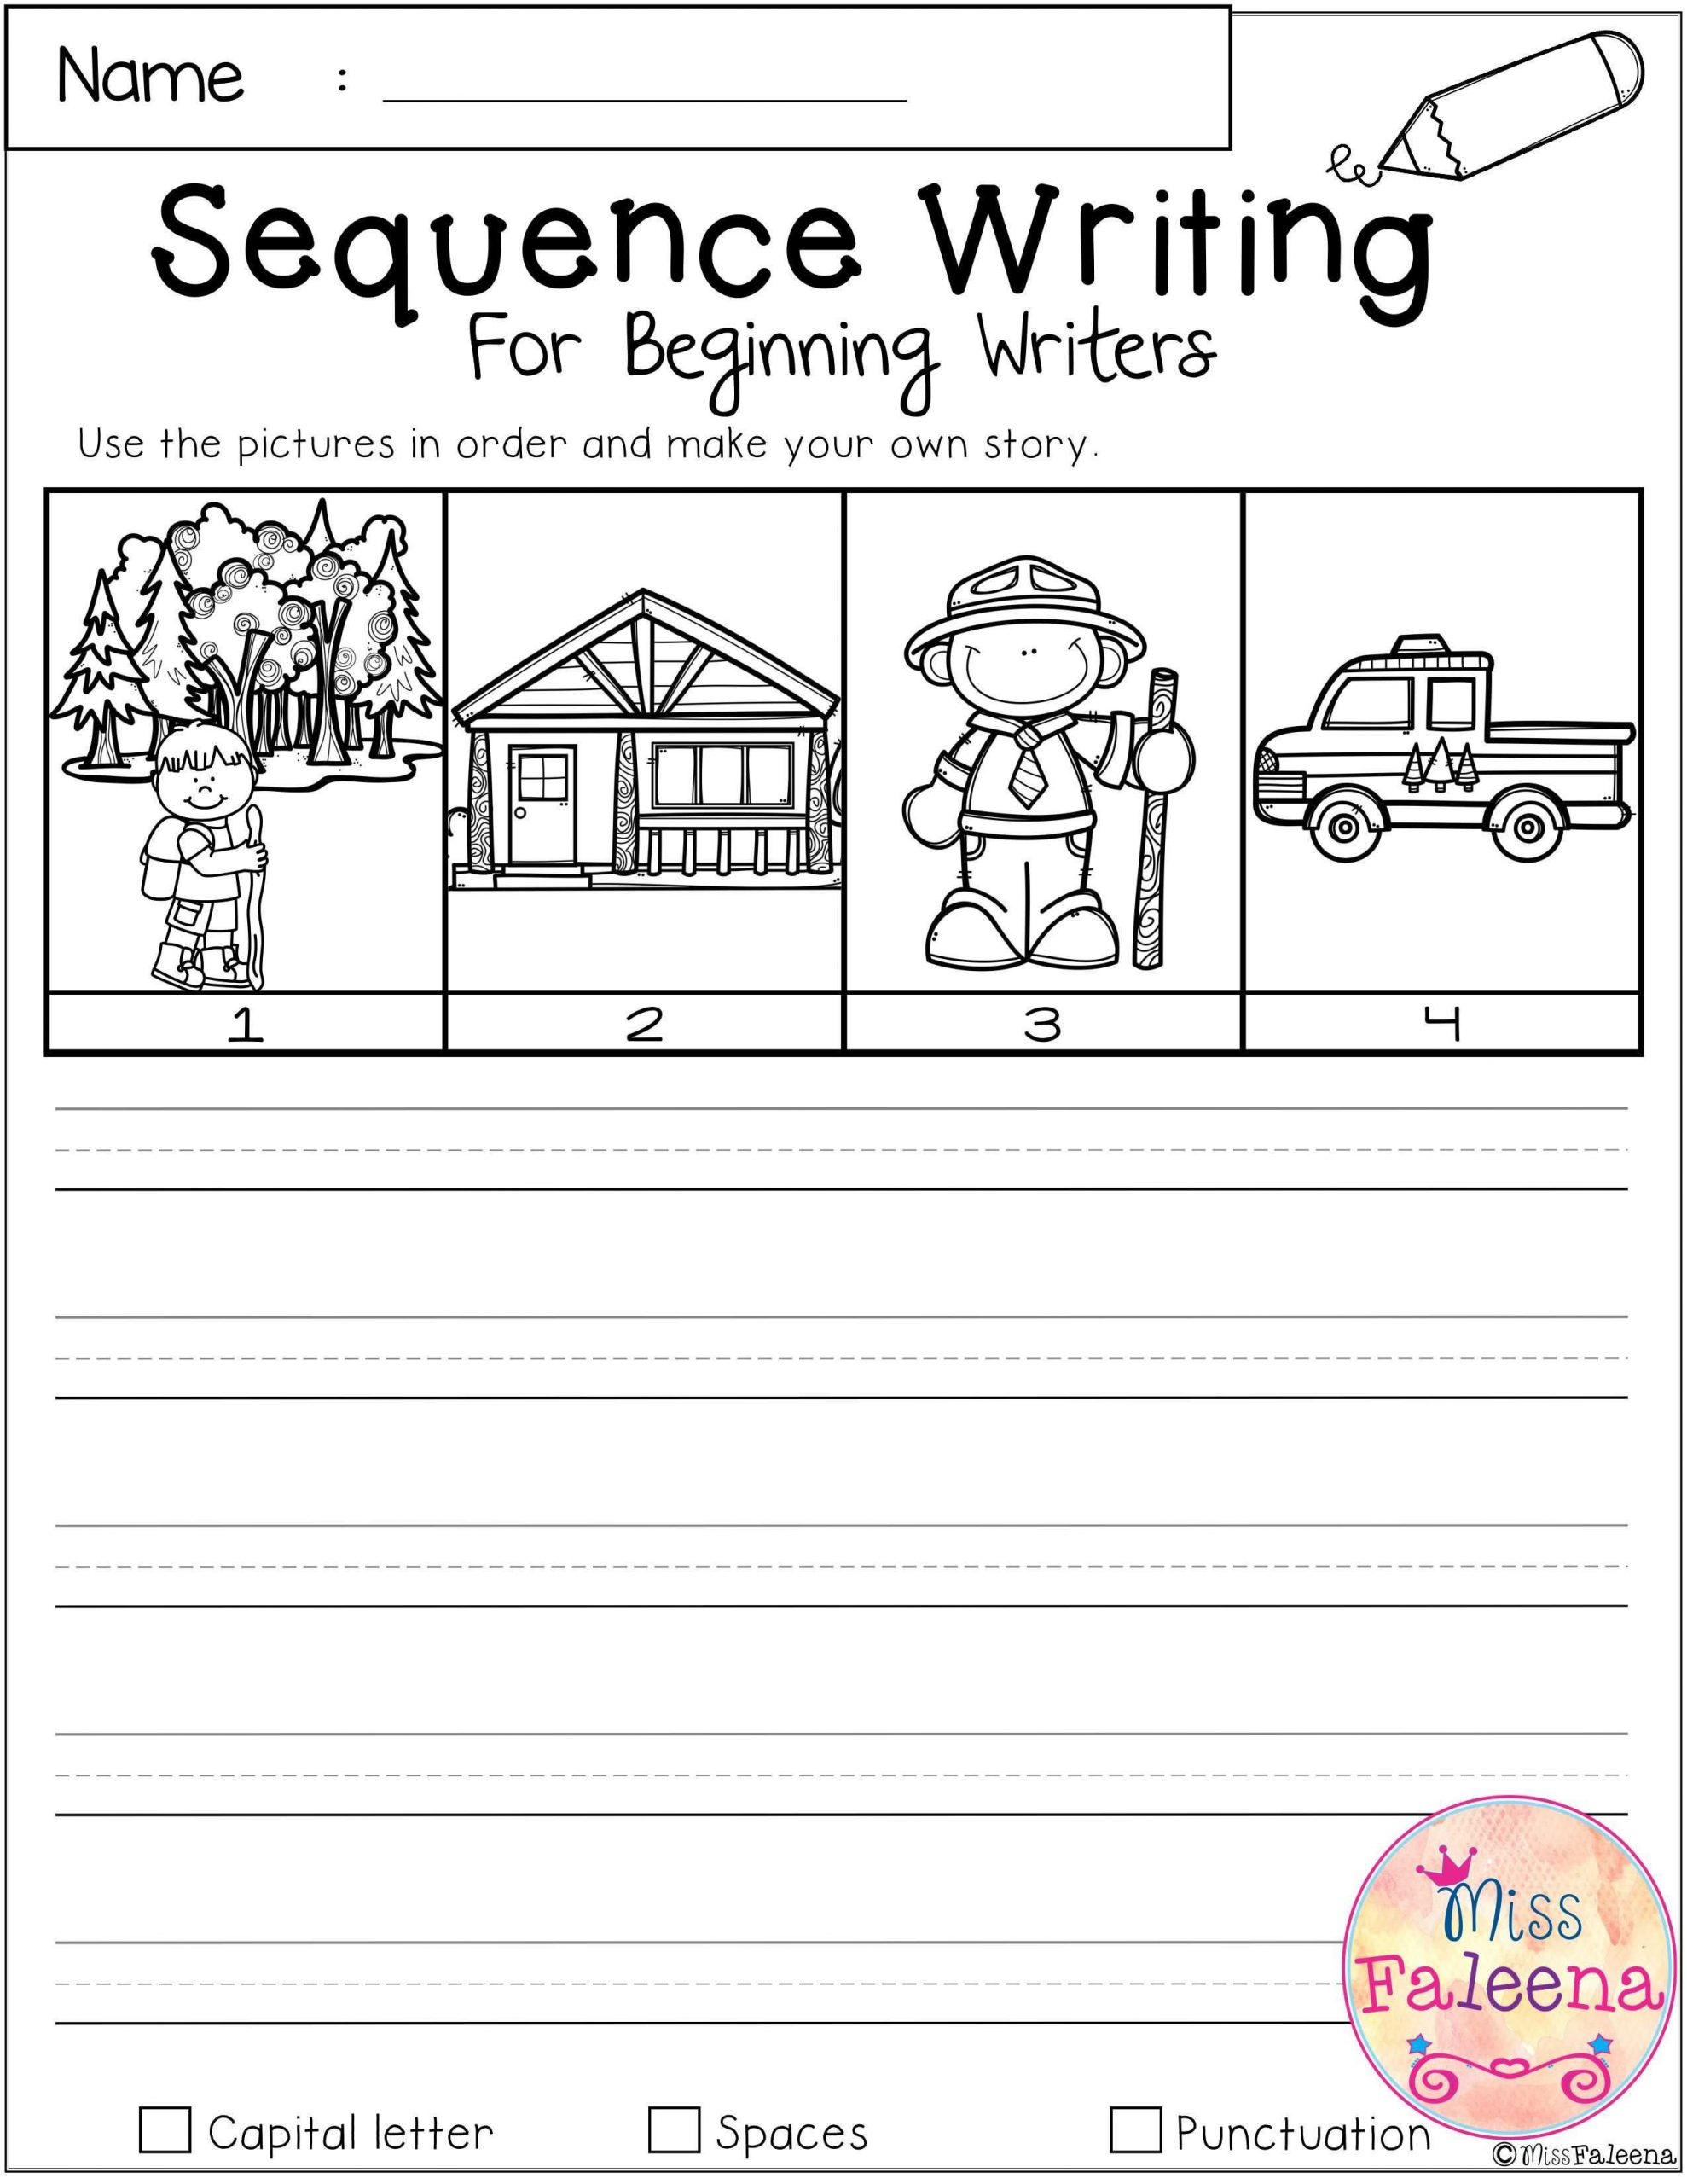 Sequence Worksheets for 1st Grade September Sequence Writing for Beginning Writers